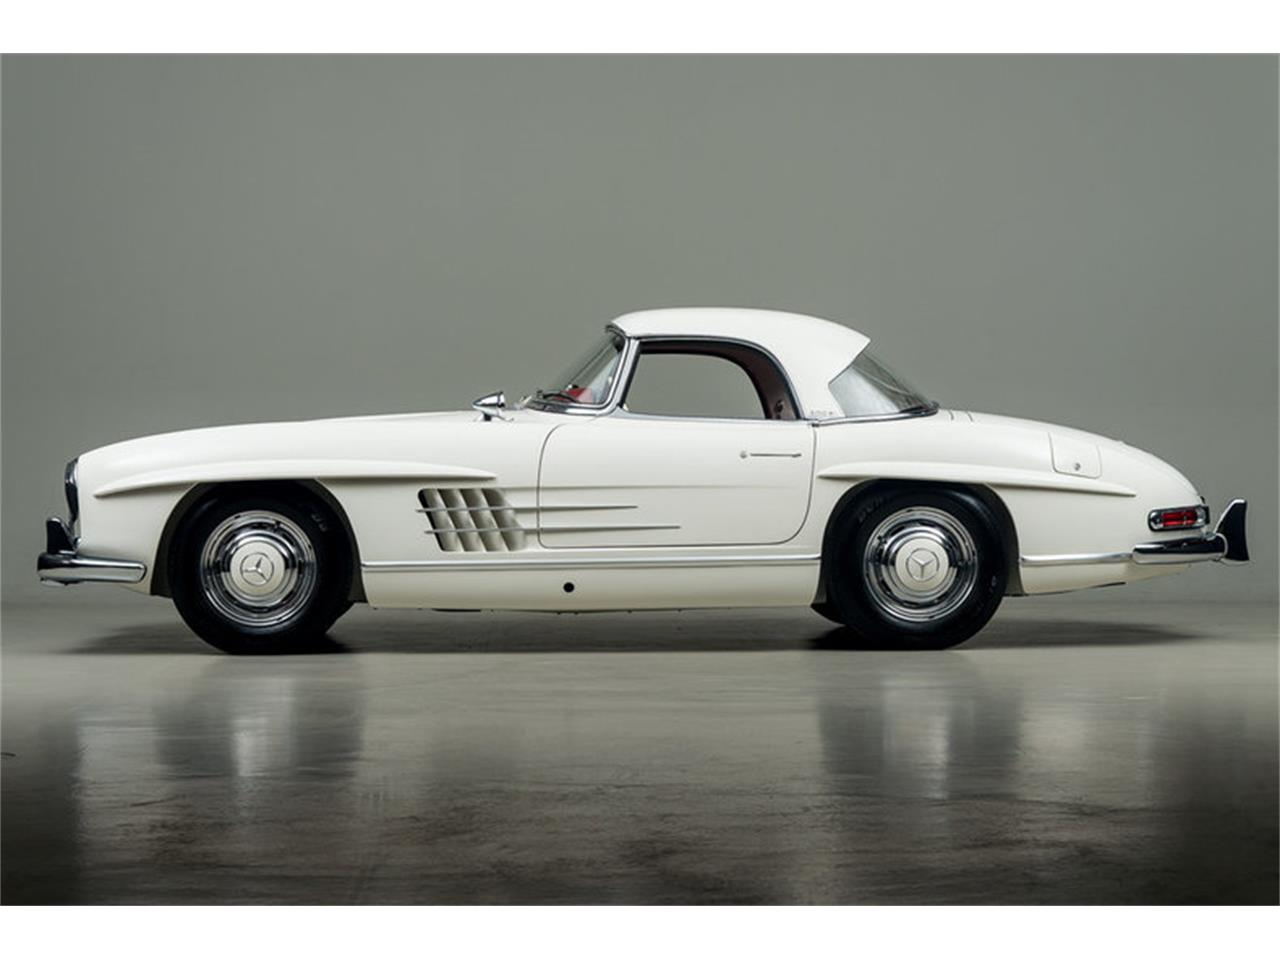 Large Picture of Classic '63 Mercedes-Benz 300SL Roadster Offered by Canepa - EFPZ